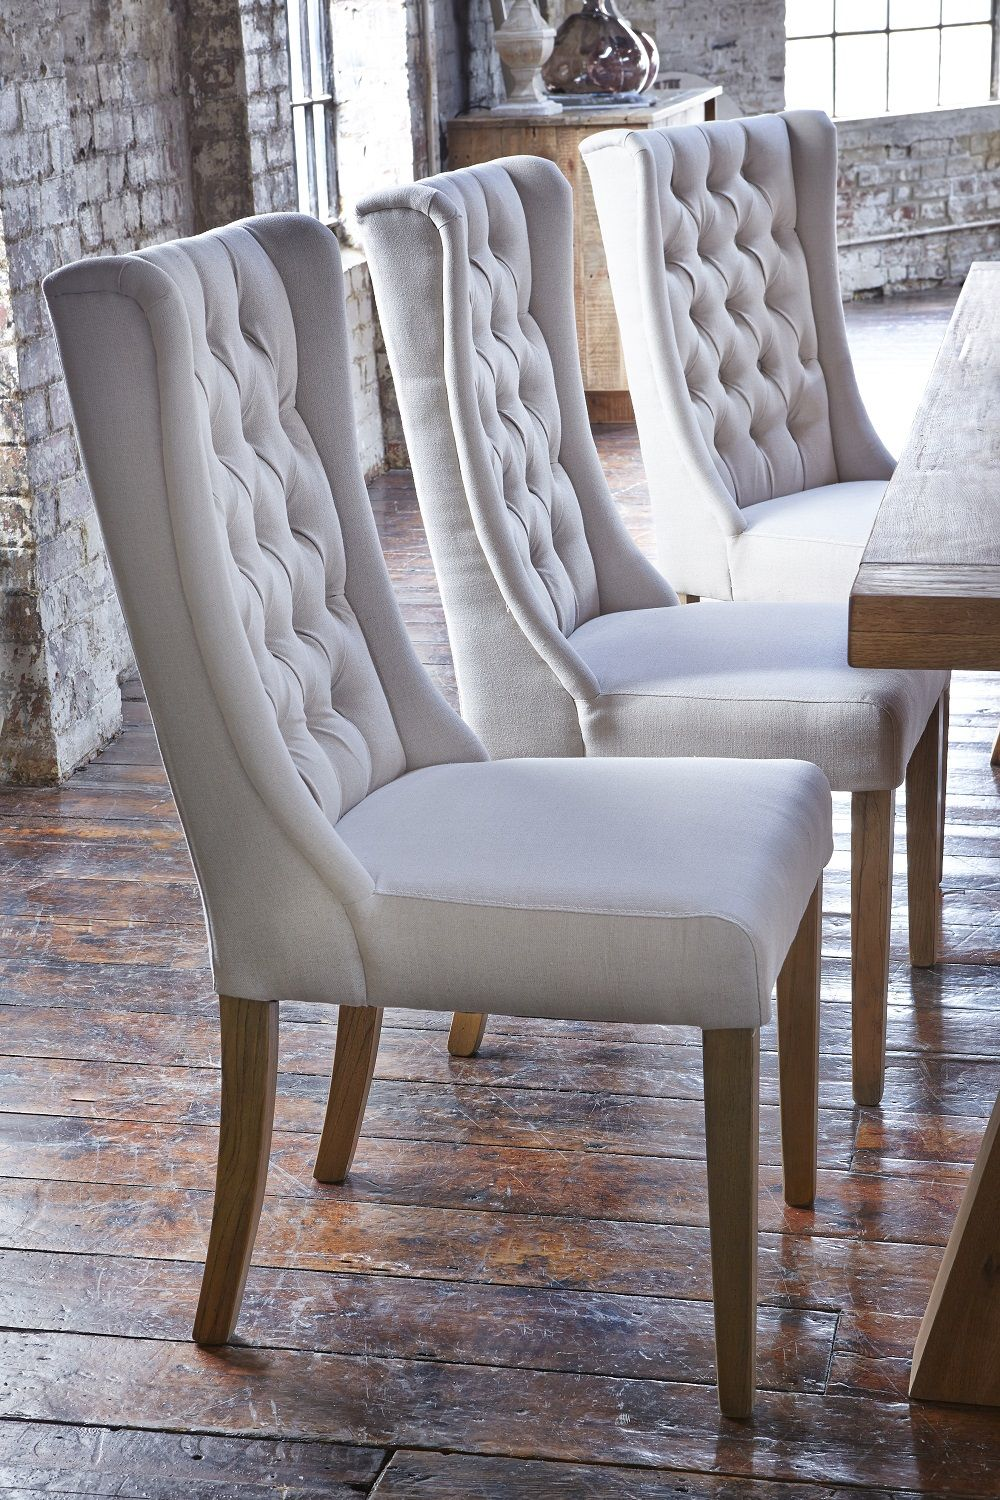 Exquisite Corner Breakfast Nook Ideas In Various Styles #BreakfastNookIdeas  #CornerBreakfastNookIdeas Cream Dining Chairs,